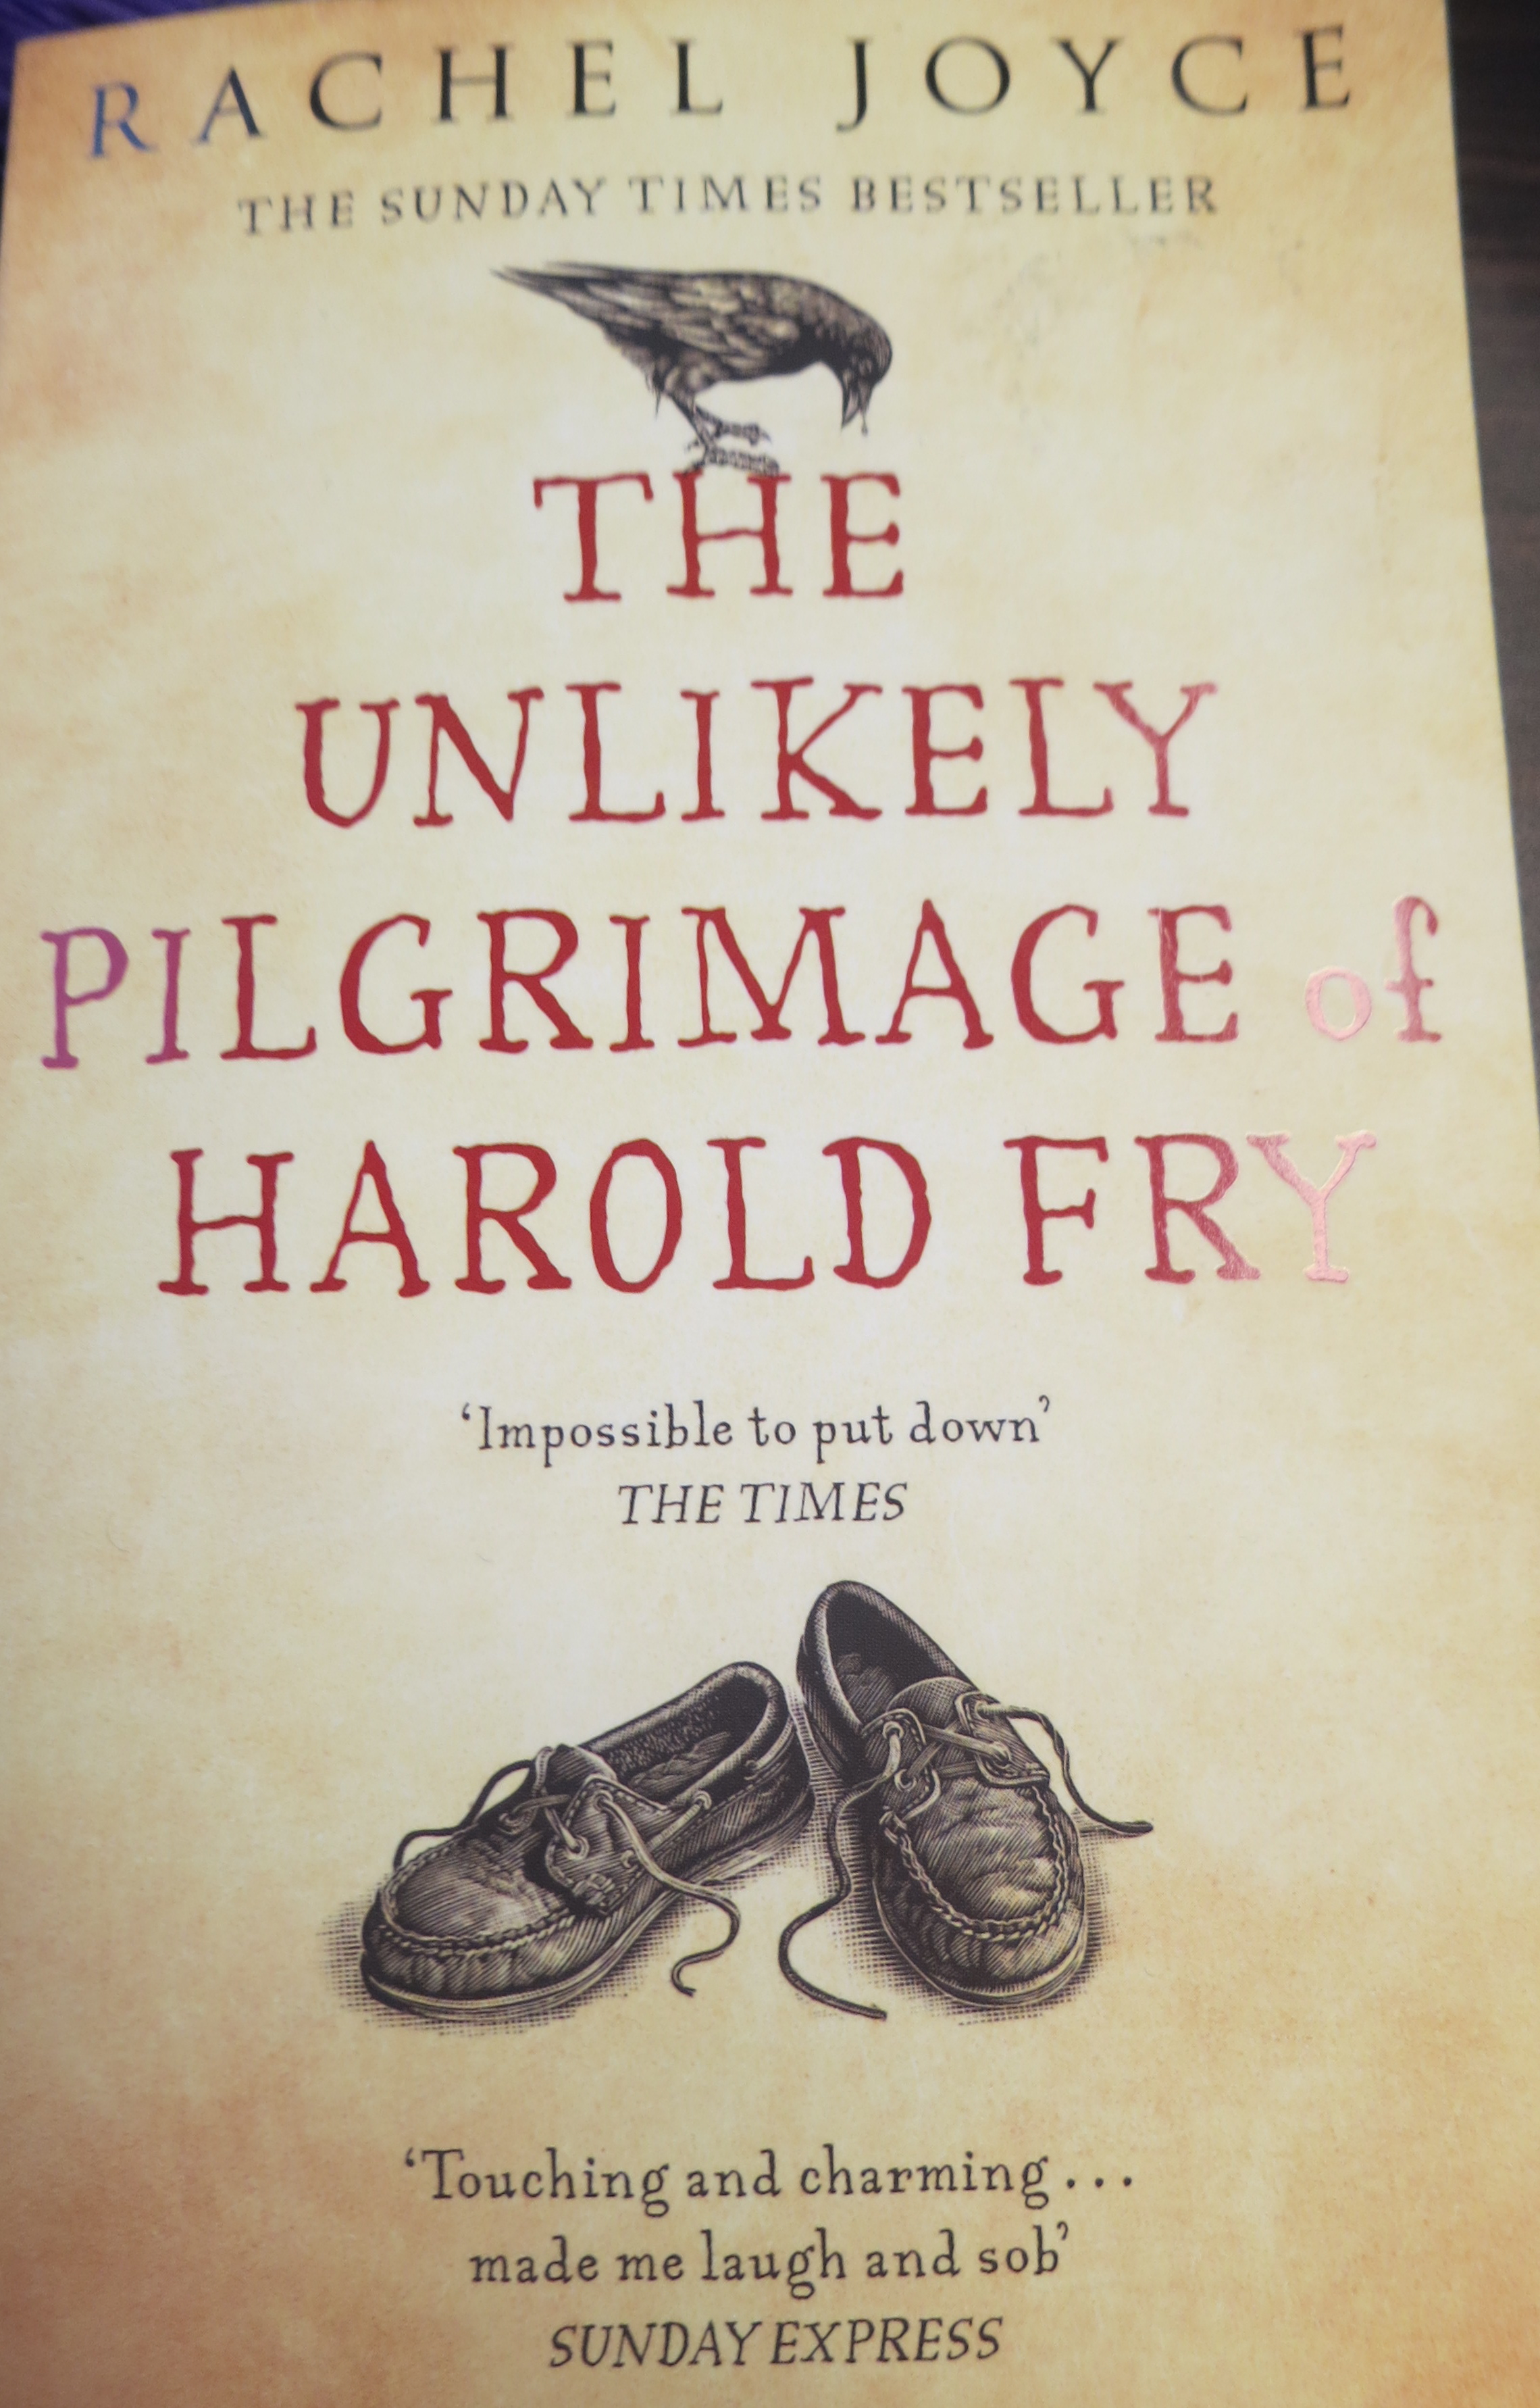 a reflection on writing an essay about the unlikely pilgrimage of harold fry You will study a shakespeare text and a collection of critical essays, the latter  enabling  the unlikely pilgrimage of harold fry philip roth  reflections  title.